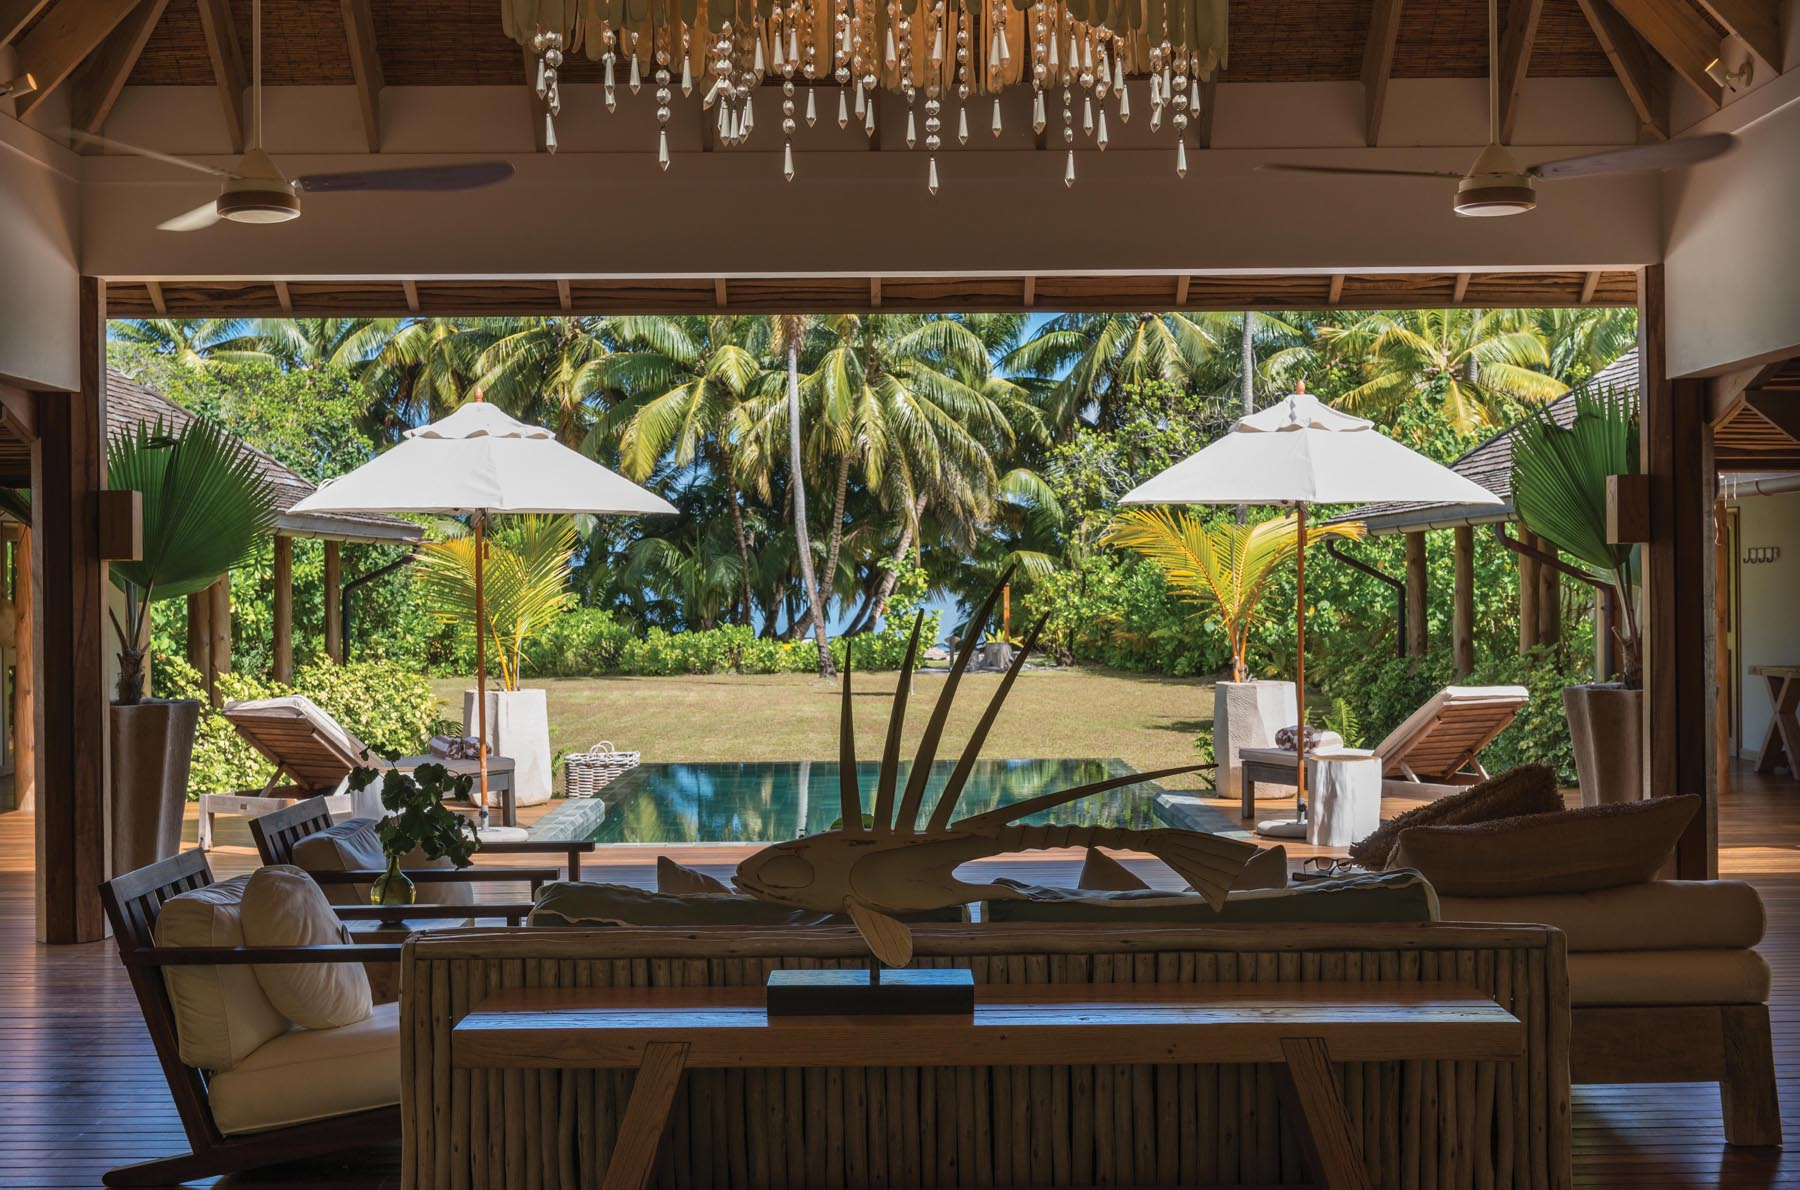 Desroches Island Resort  Paradise In Seychelles  iDesignArch  Interior Design Architecture